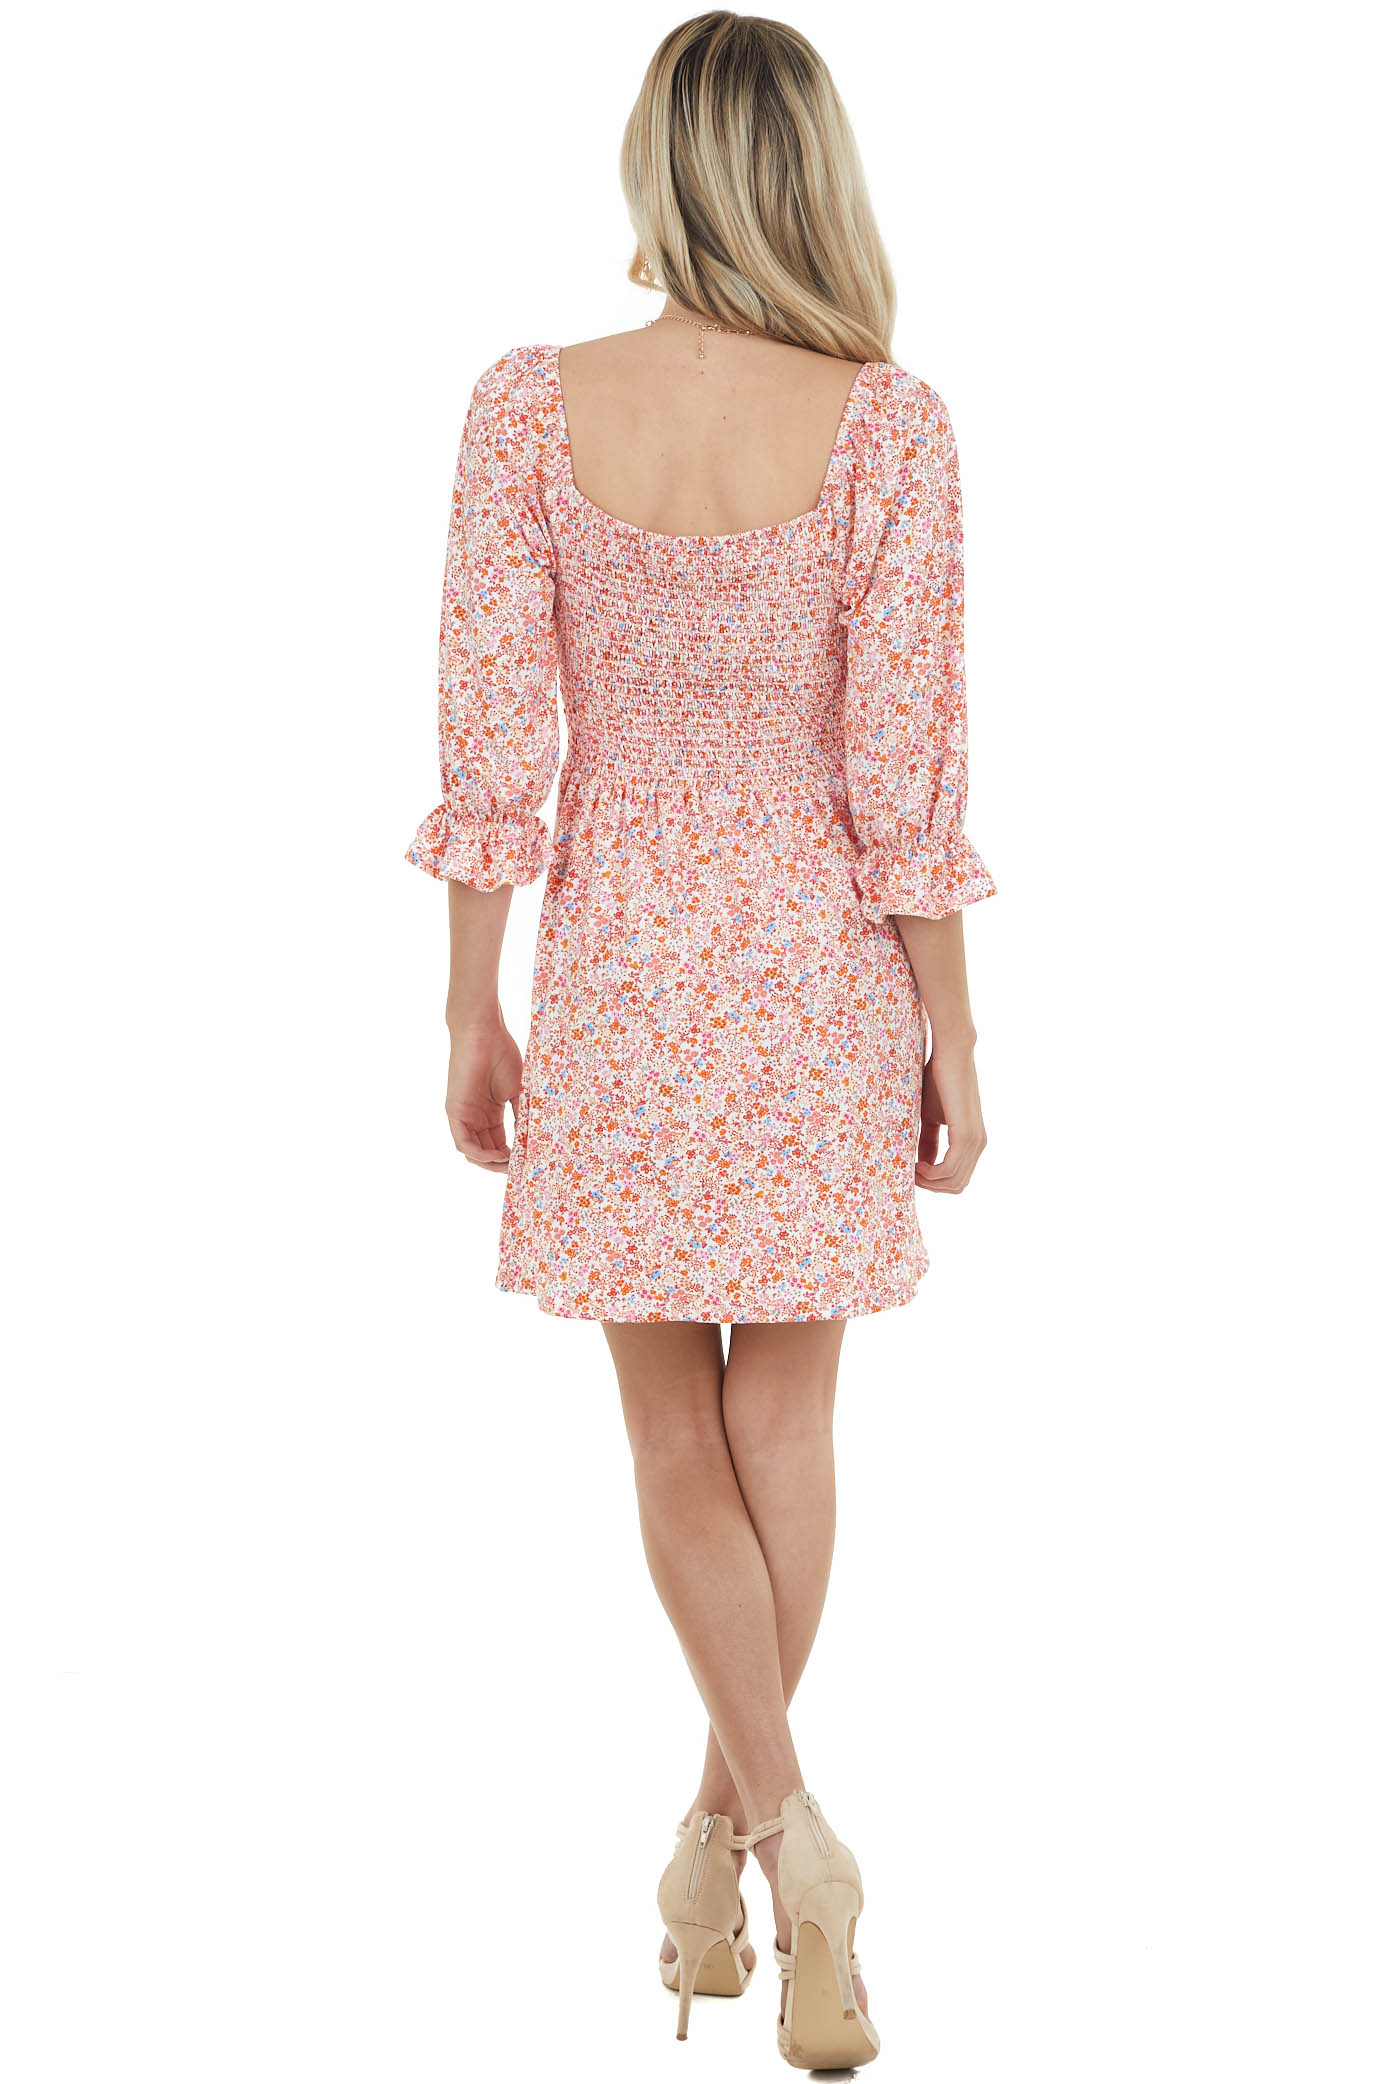 Ivory Ditsy Floral 3/4 Sleeve Mini Dress with Smocked Back